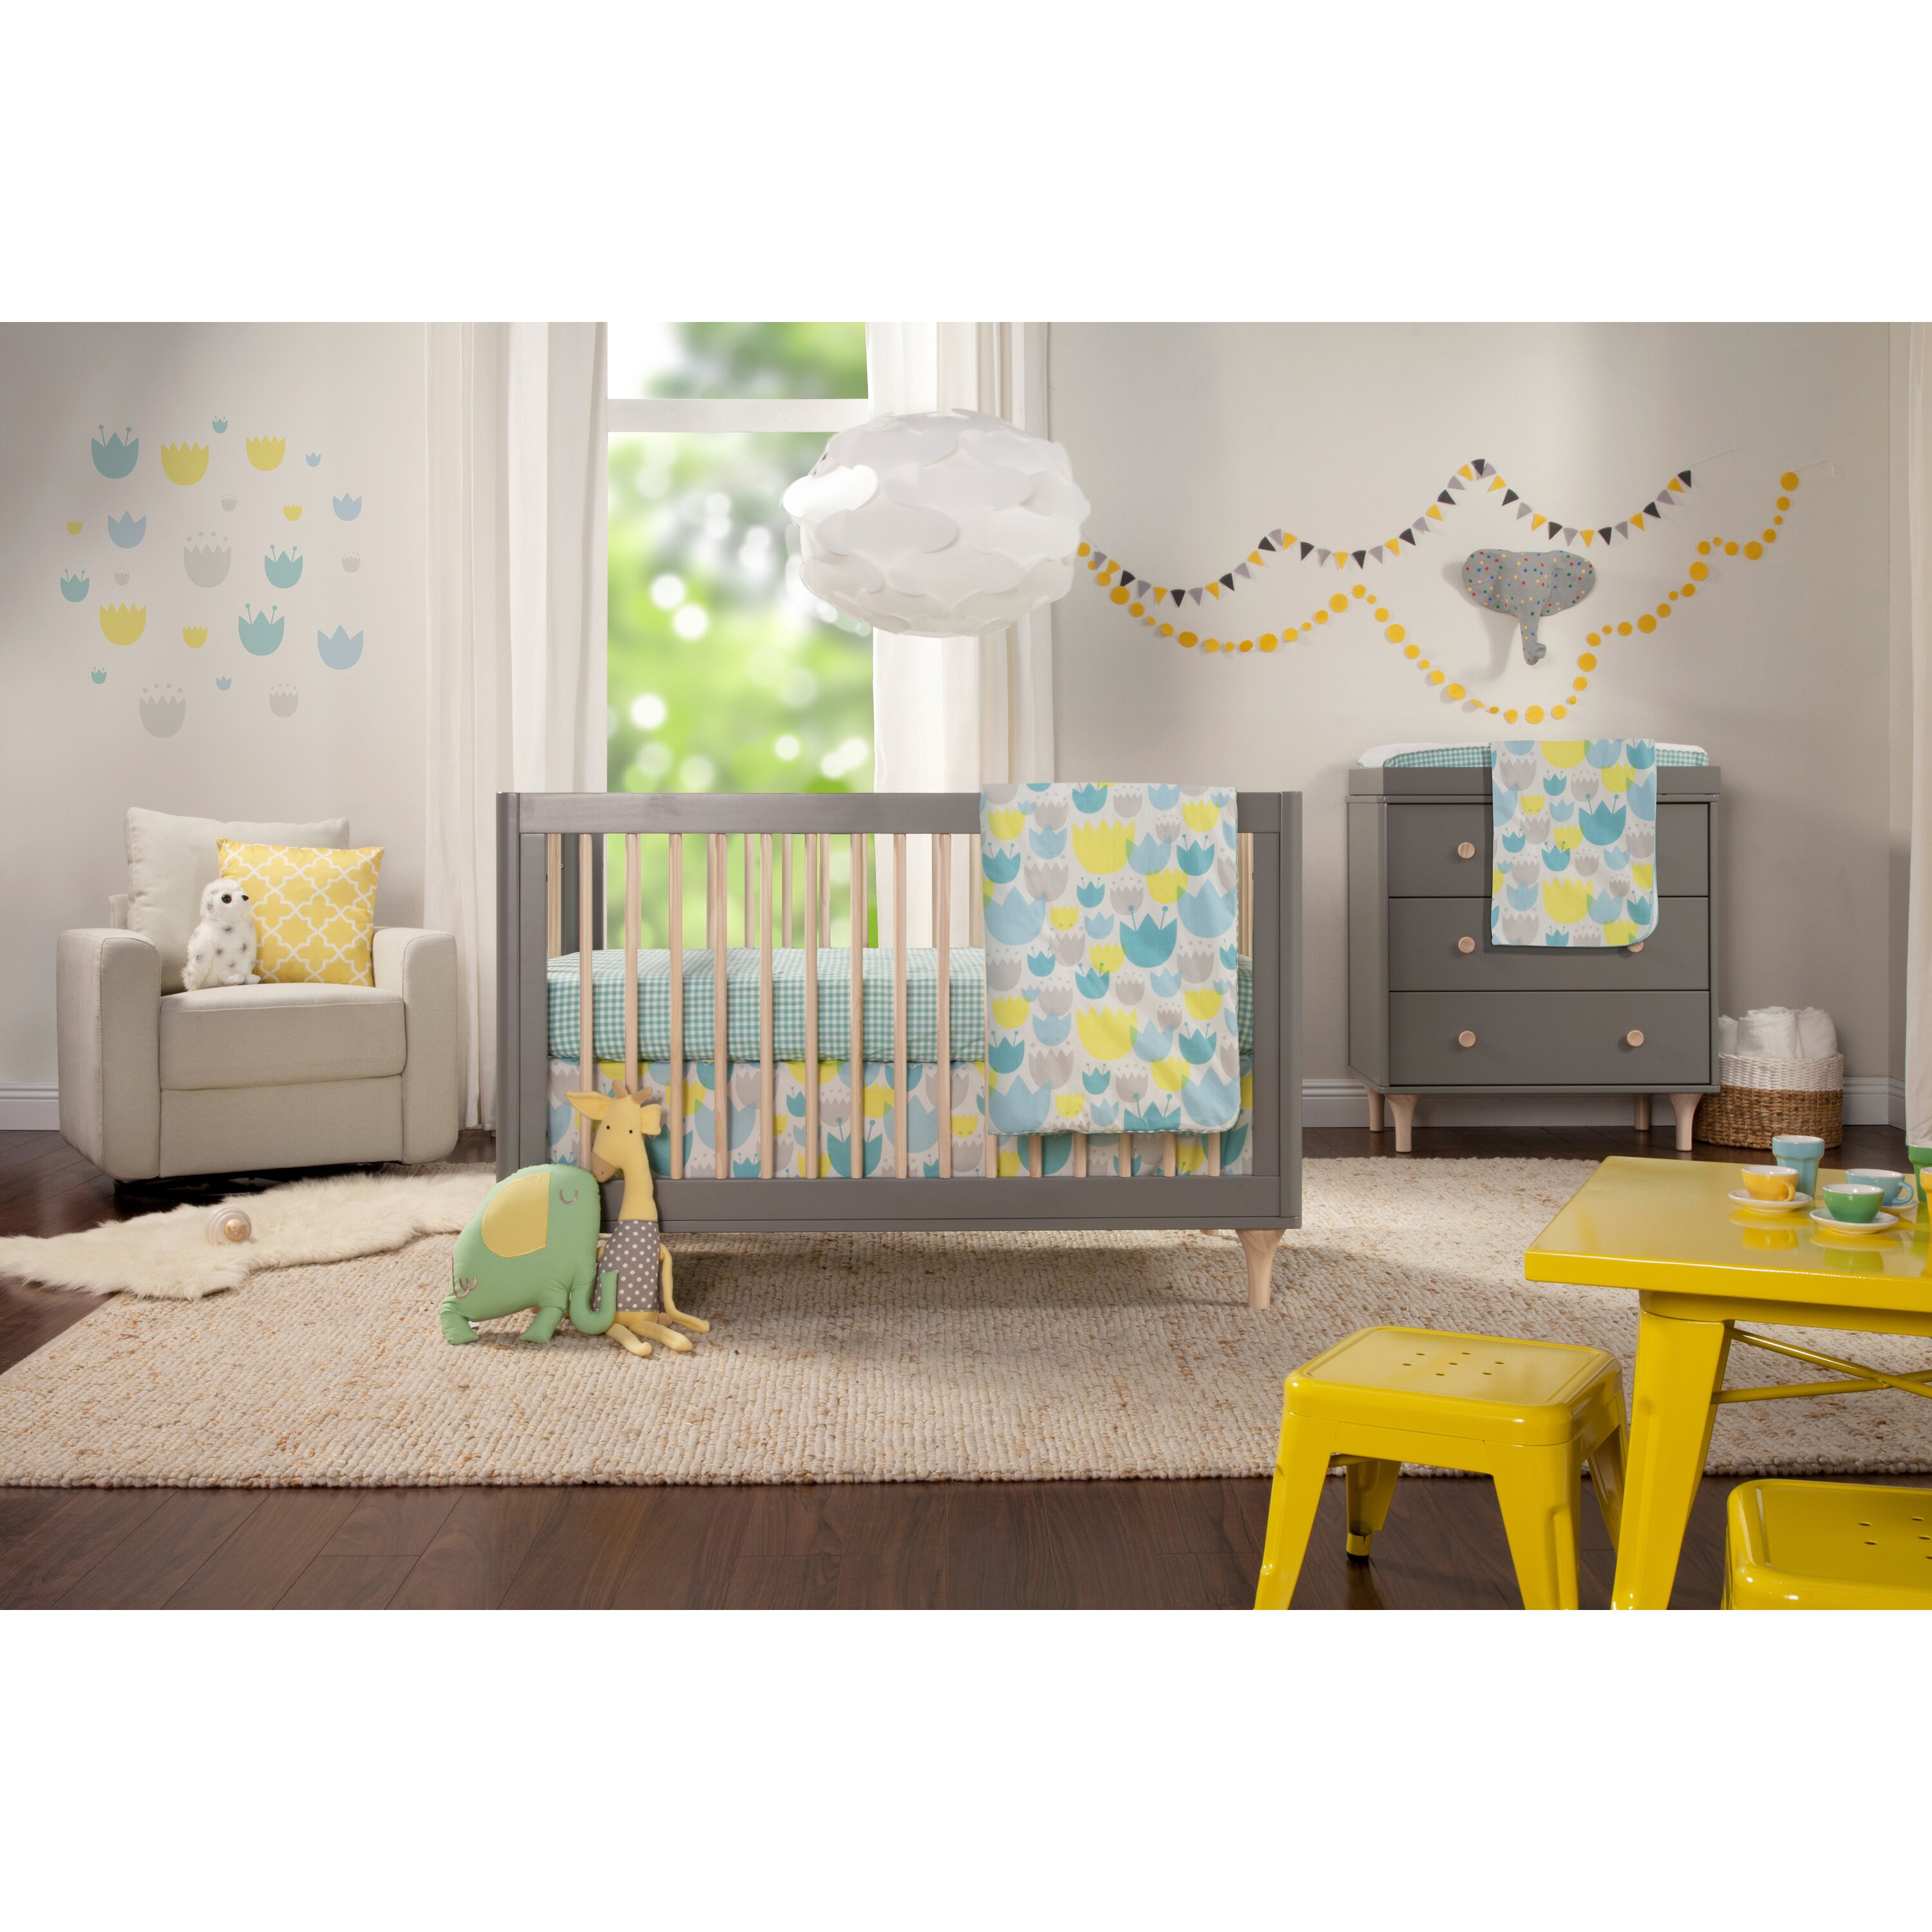 cheap bedroom sets babyletto tulip garden stroller blanket wayfair 11034